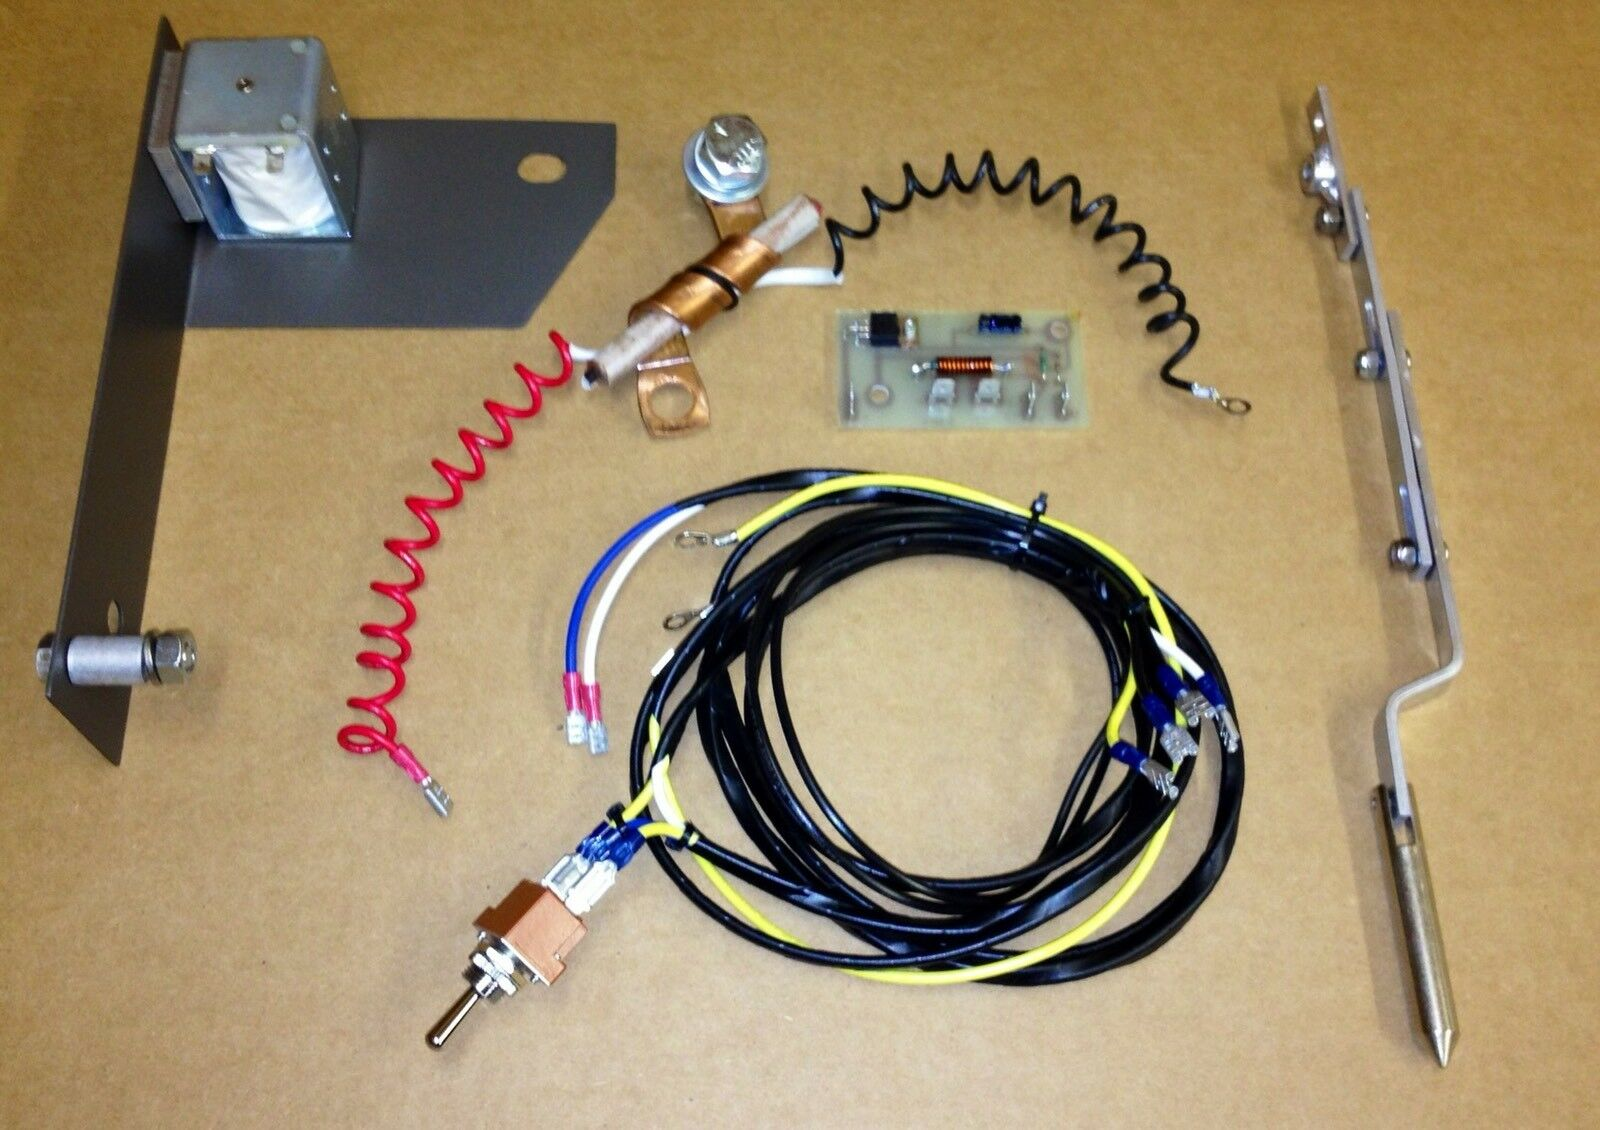 lincoln electric sa 200 idler upgrade kit for sale online ebaynorton secured powered by verisign